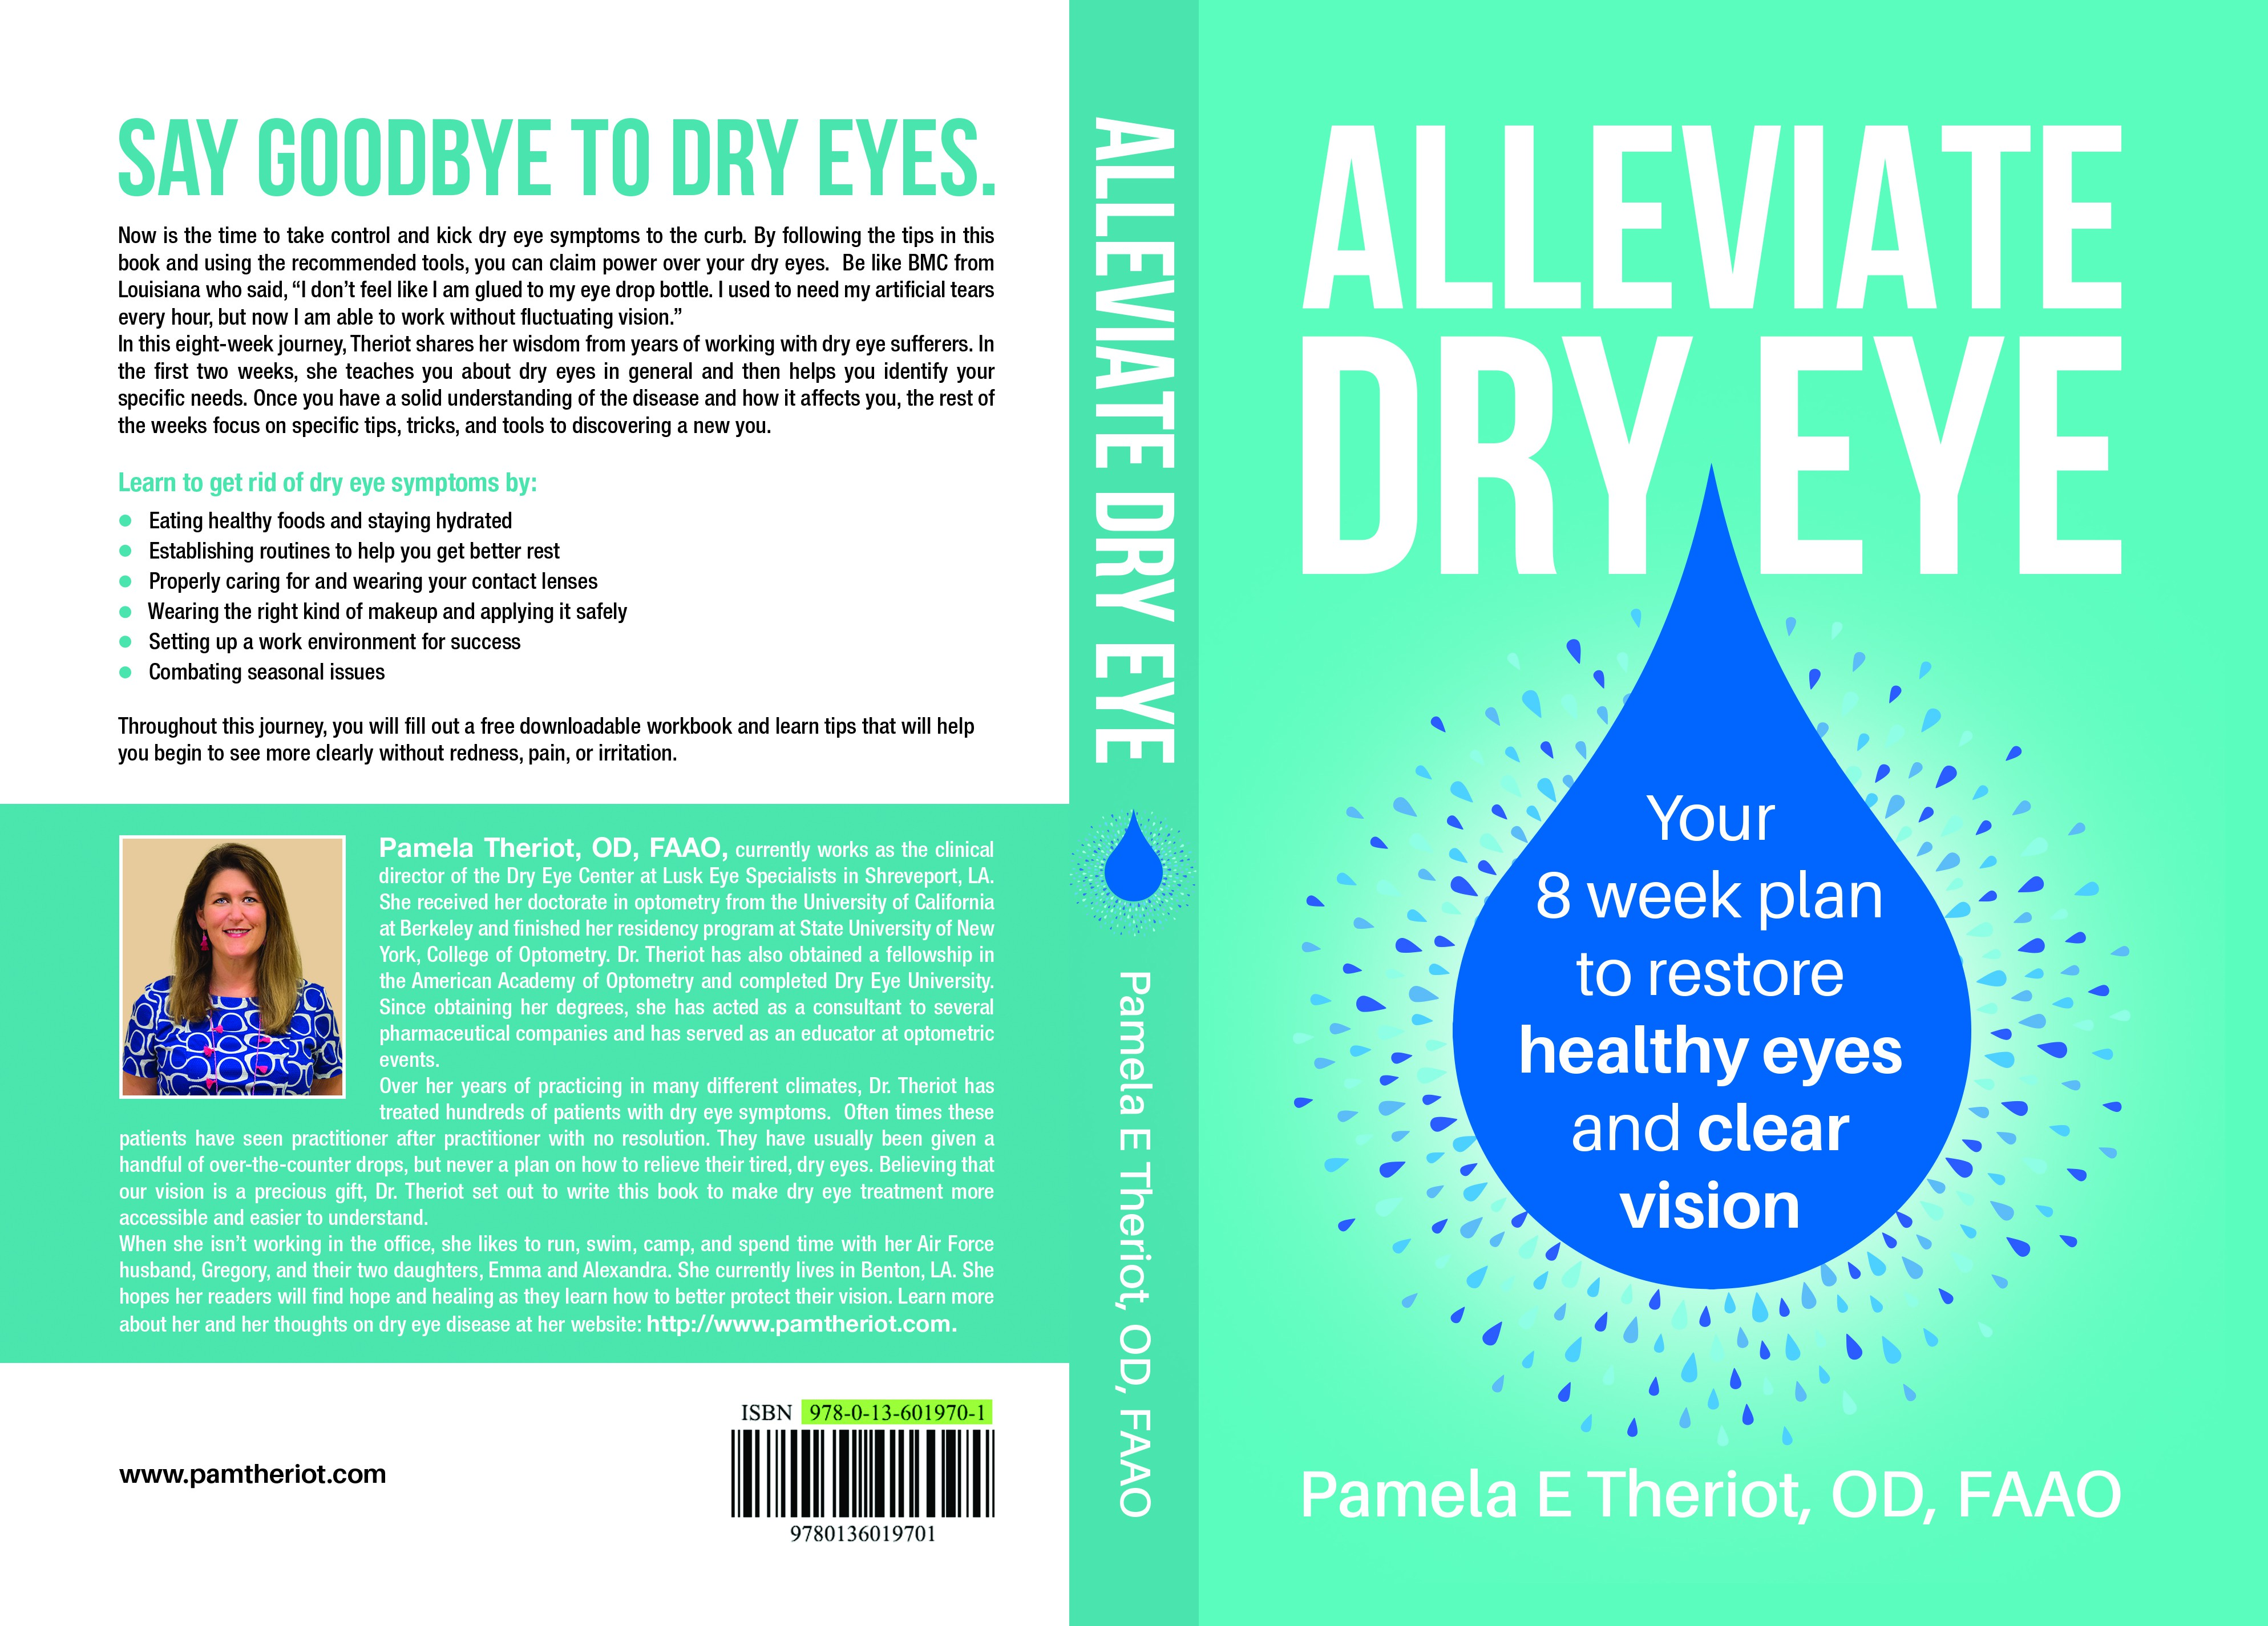 Design a clean and clear book cover for a guide to alleviate dryness in dry eye sufferers